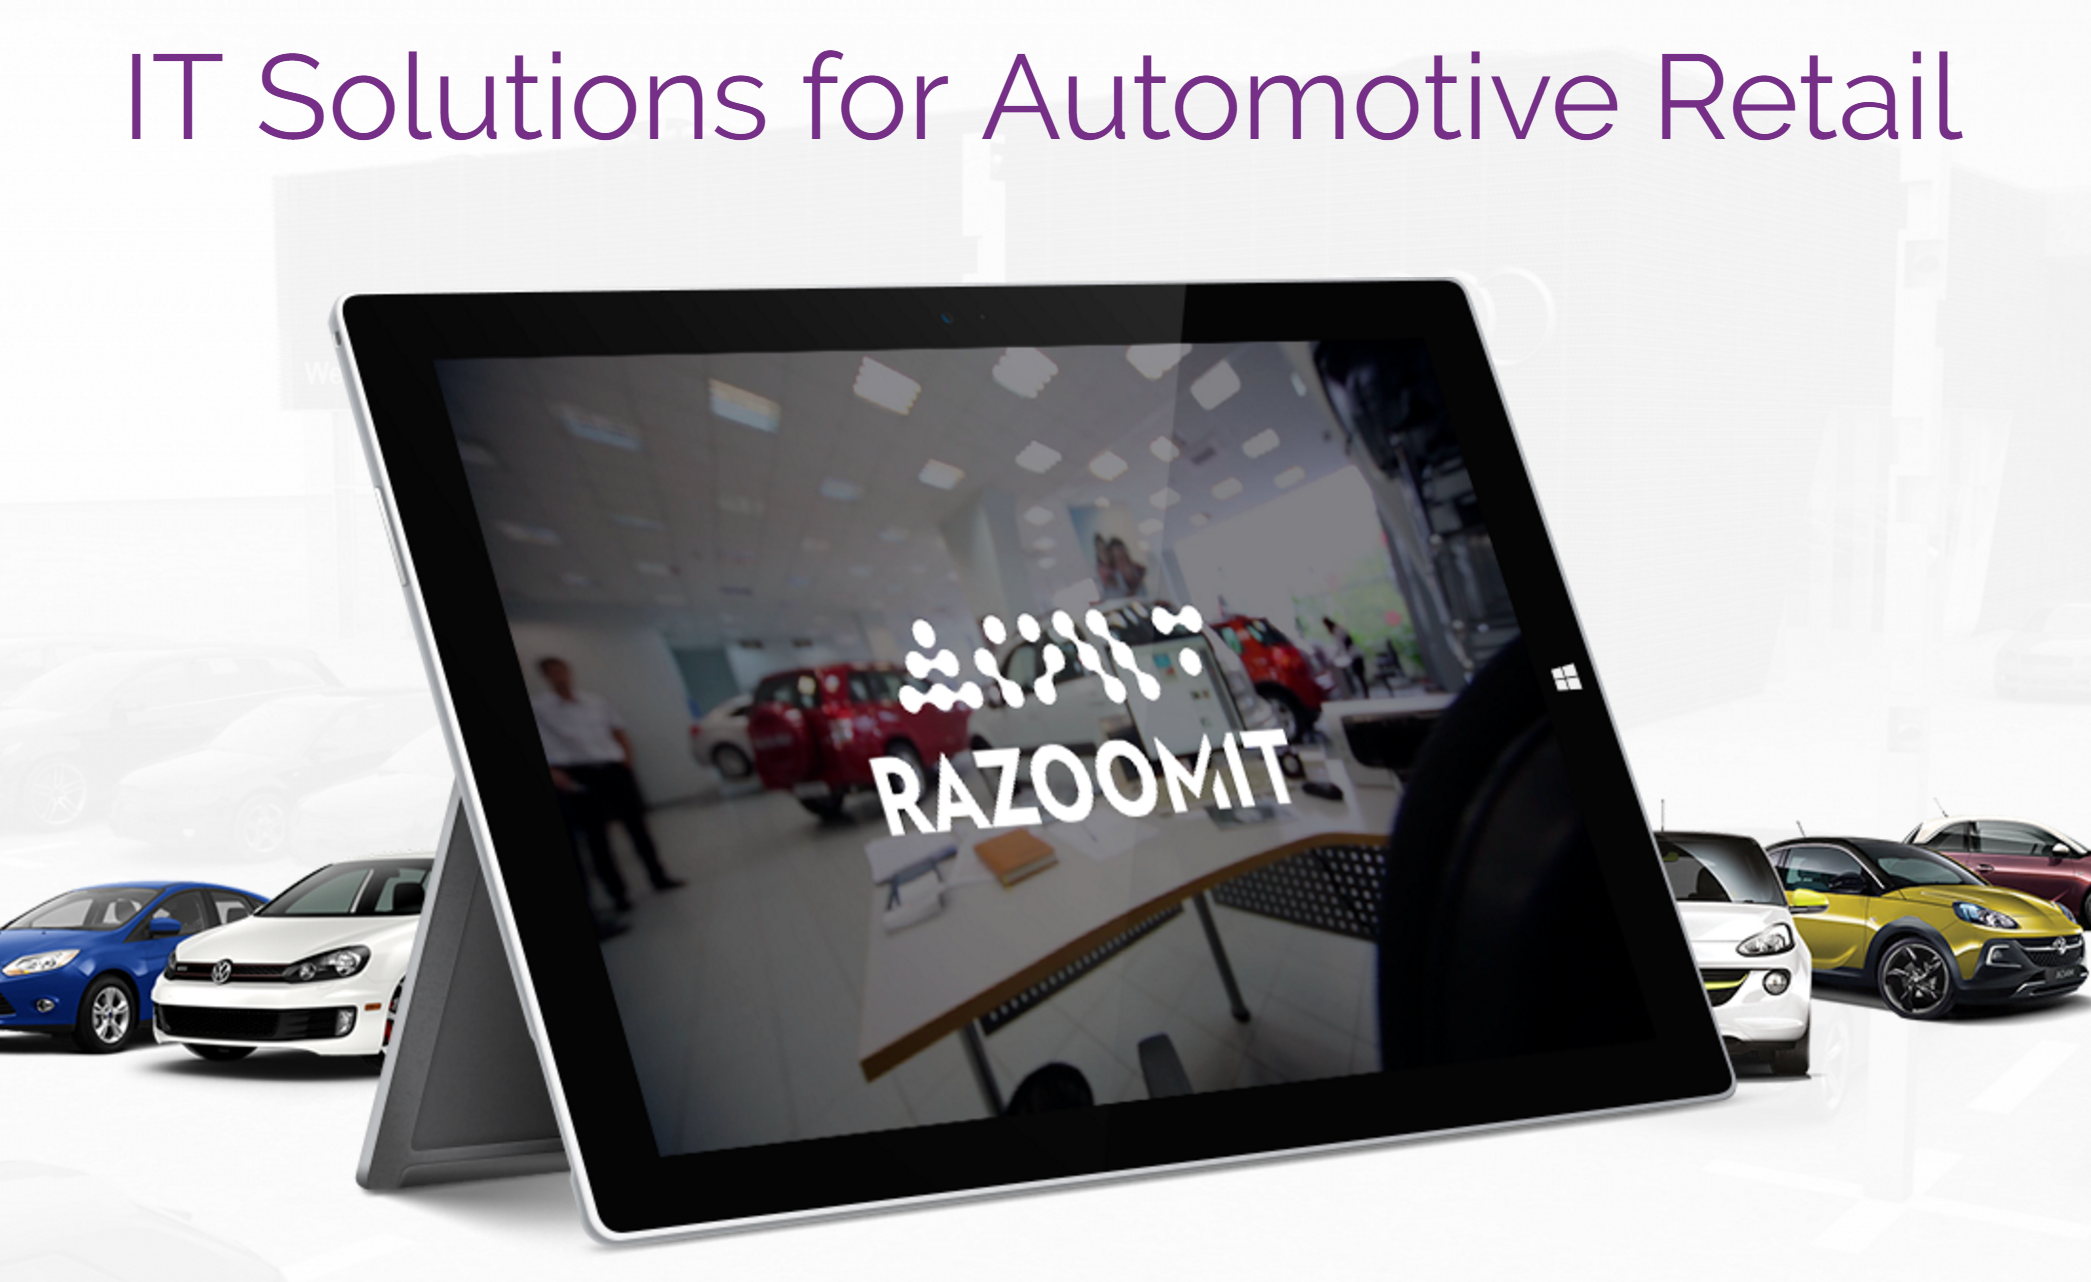 case 4 tabh inc automotive consulting Discover how infosys implemented innovative solutions for clients across the global automotive industry gain valuable insights with our case studies now.